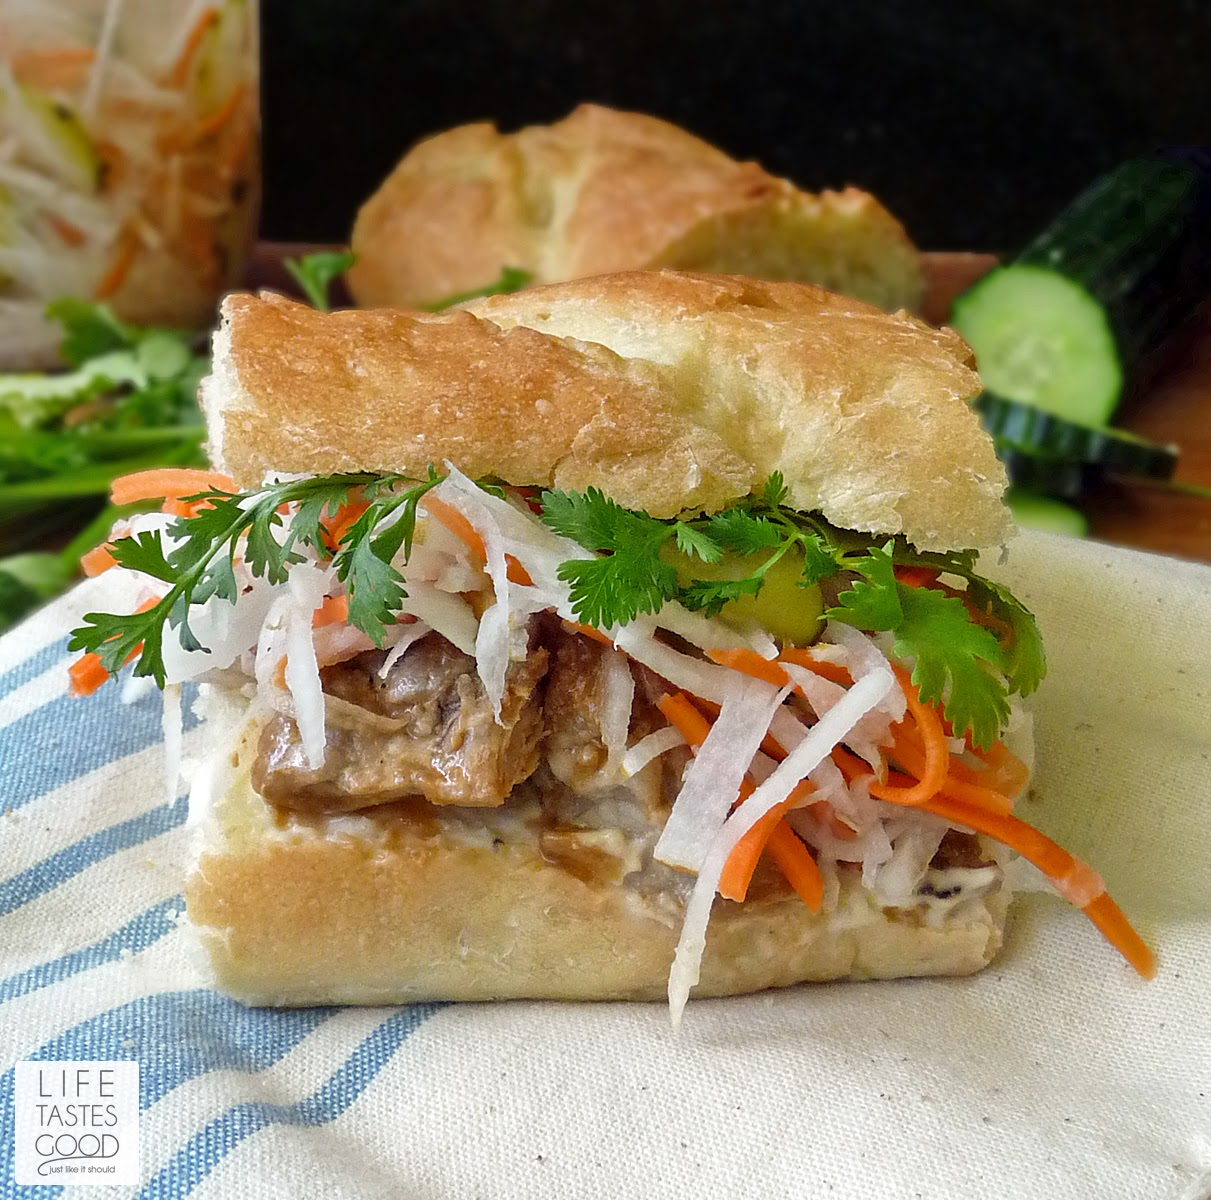 ... banh mi caramelized pork bánh mì pork meatball banh mi banh mi with